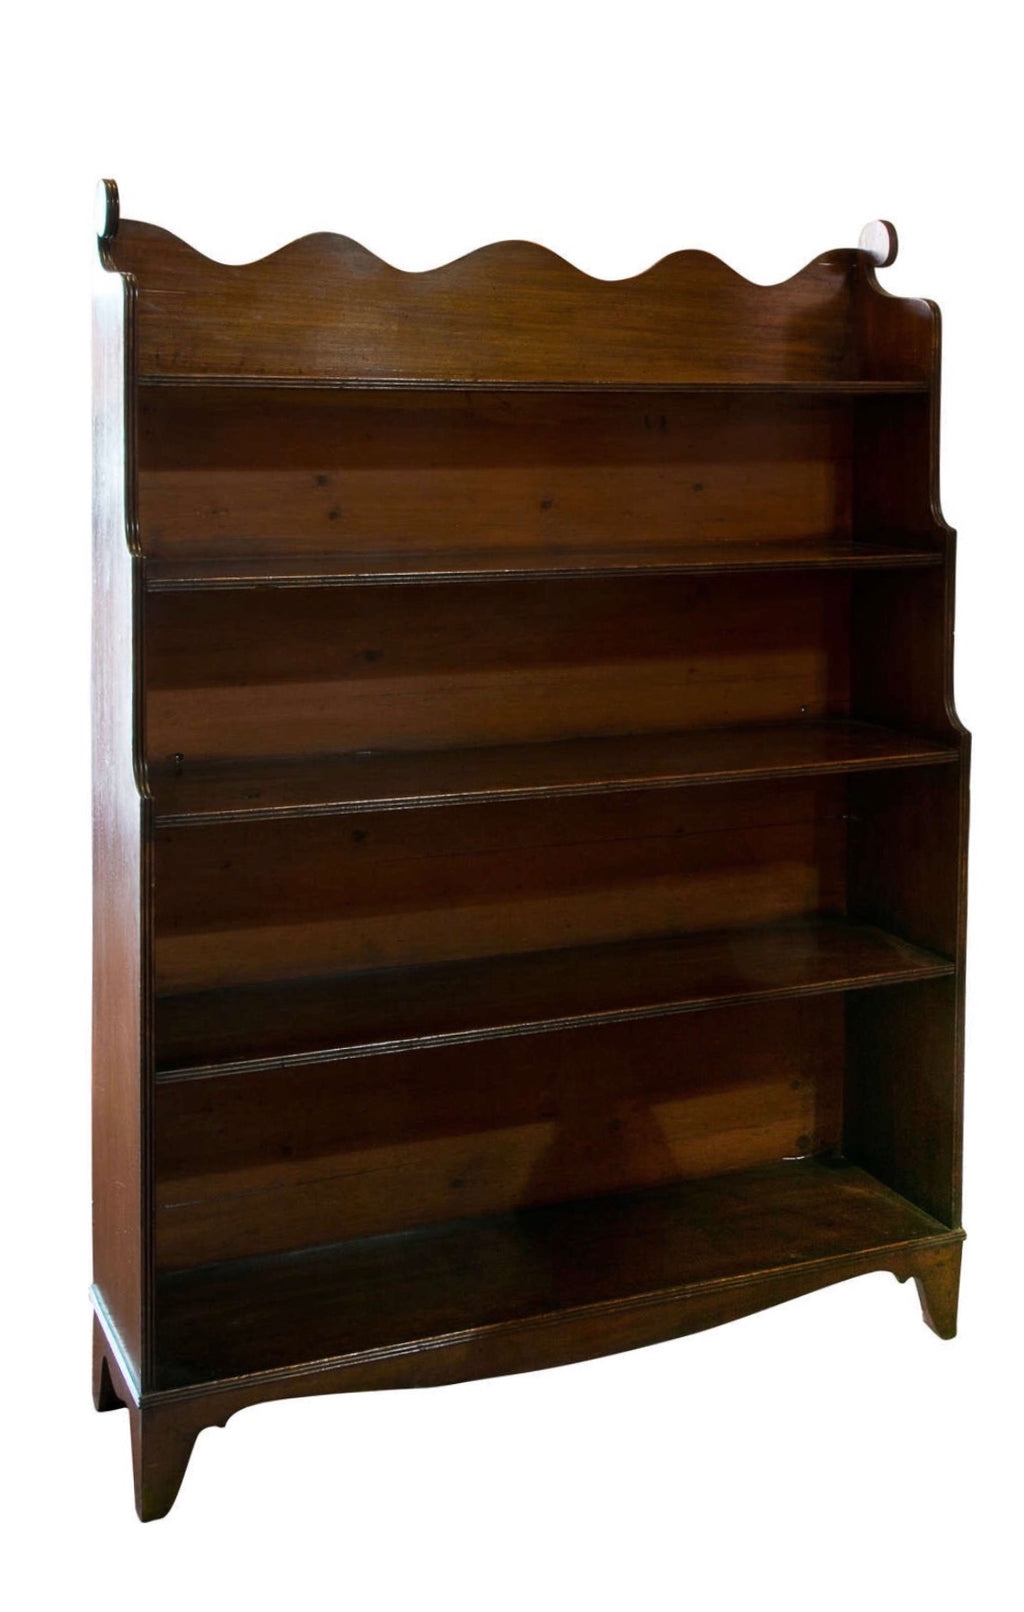 Antique 19th c Mahogany Wave Bookcase